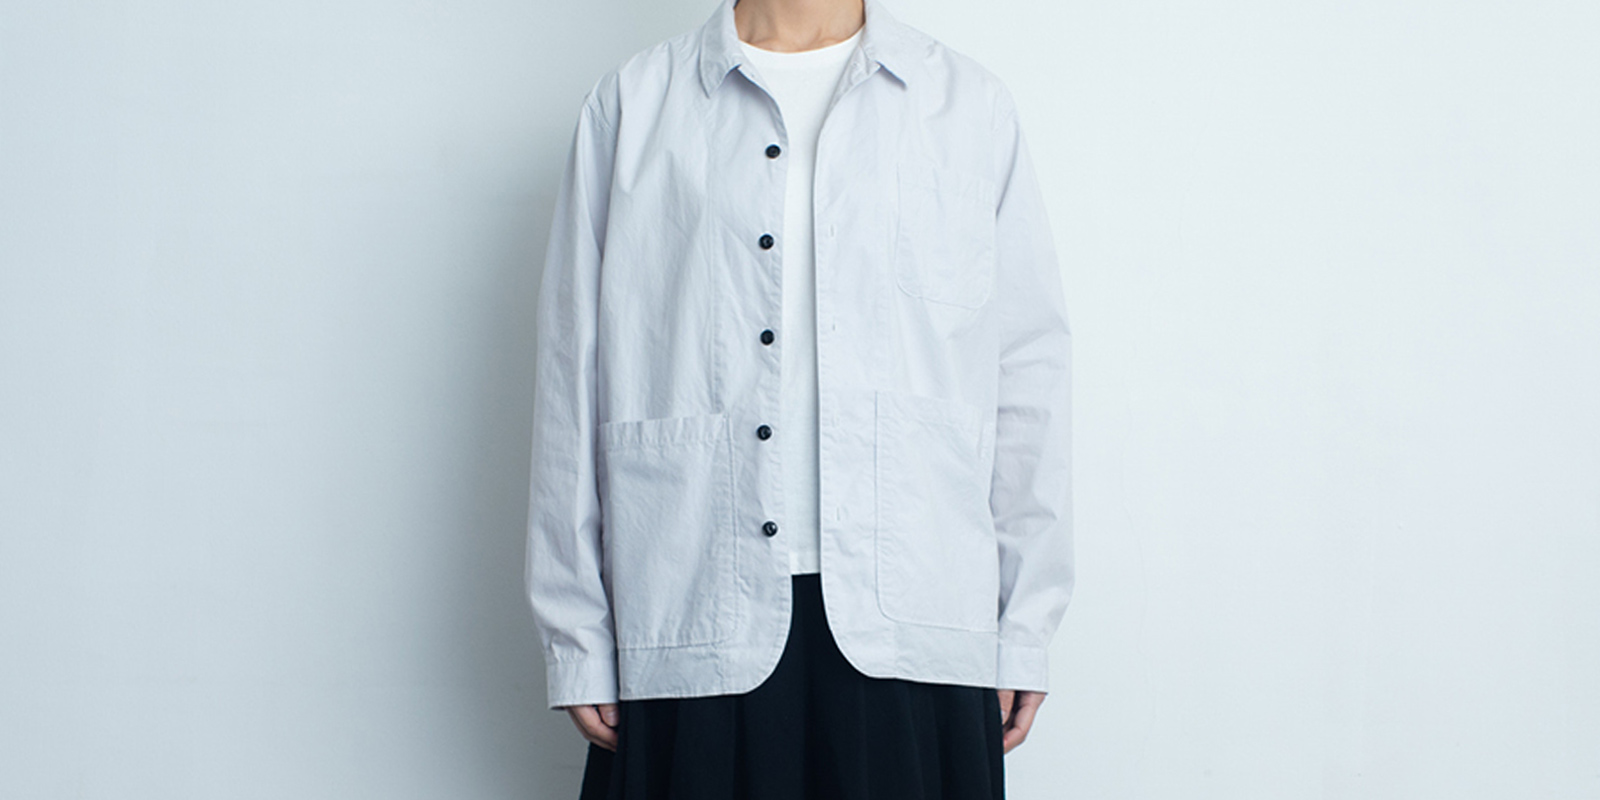 d 202BACK POCKET SHIRT・アイスブルー・M